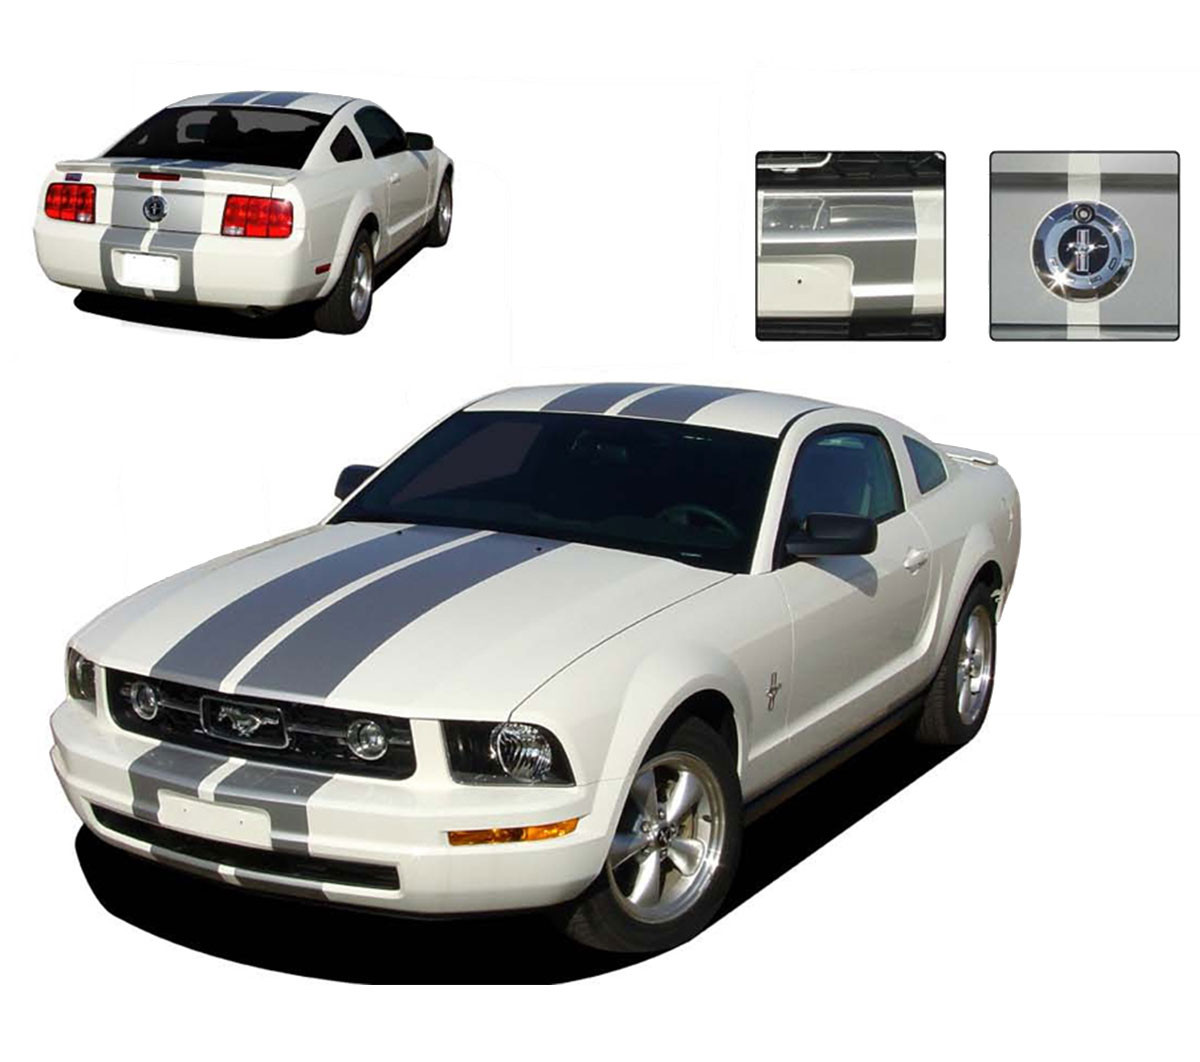 If you&aposre lucky enough to be in a position to buy one of these automotive works of art, then there&aposs no reason not to (we. Fastback 2 Boss Hood Side Stripes 3m Vinyl Graphic Decal 2005 2009 Ford Mustang Parts Accessories Automotive